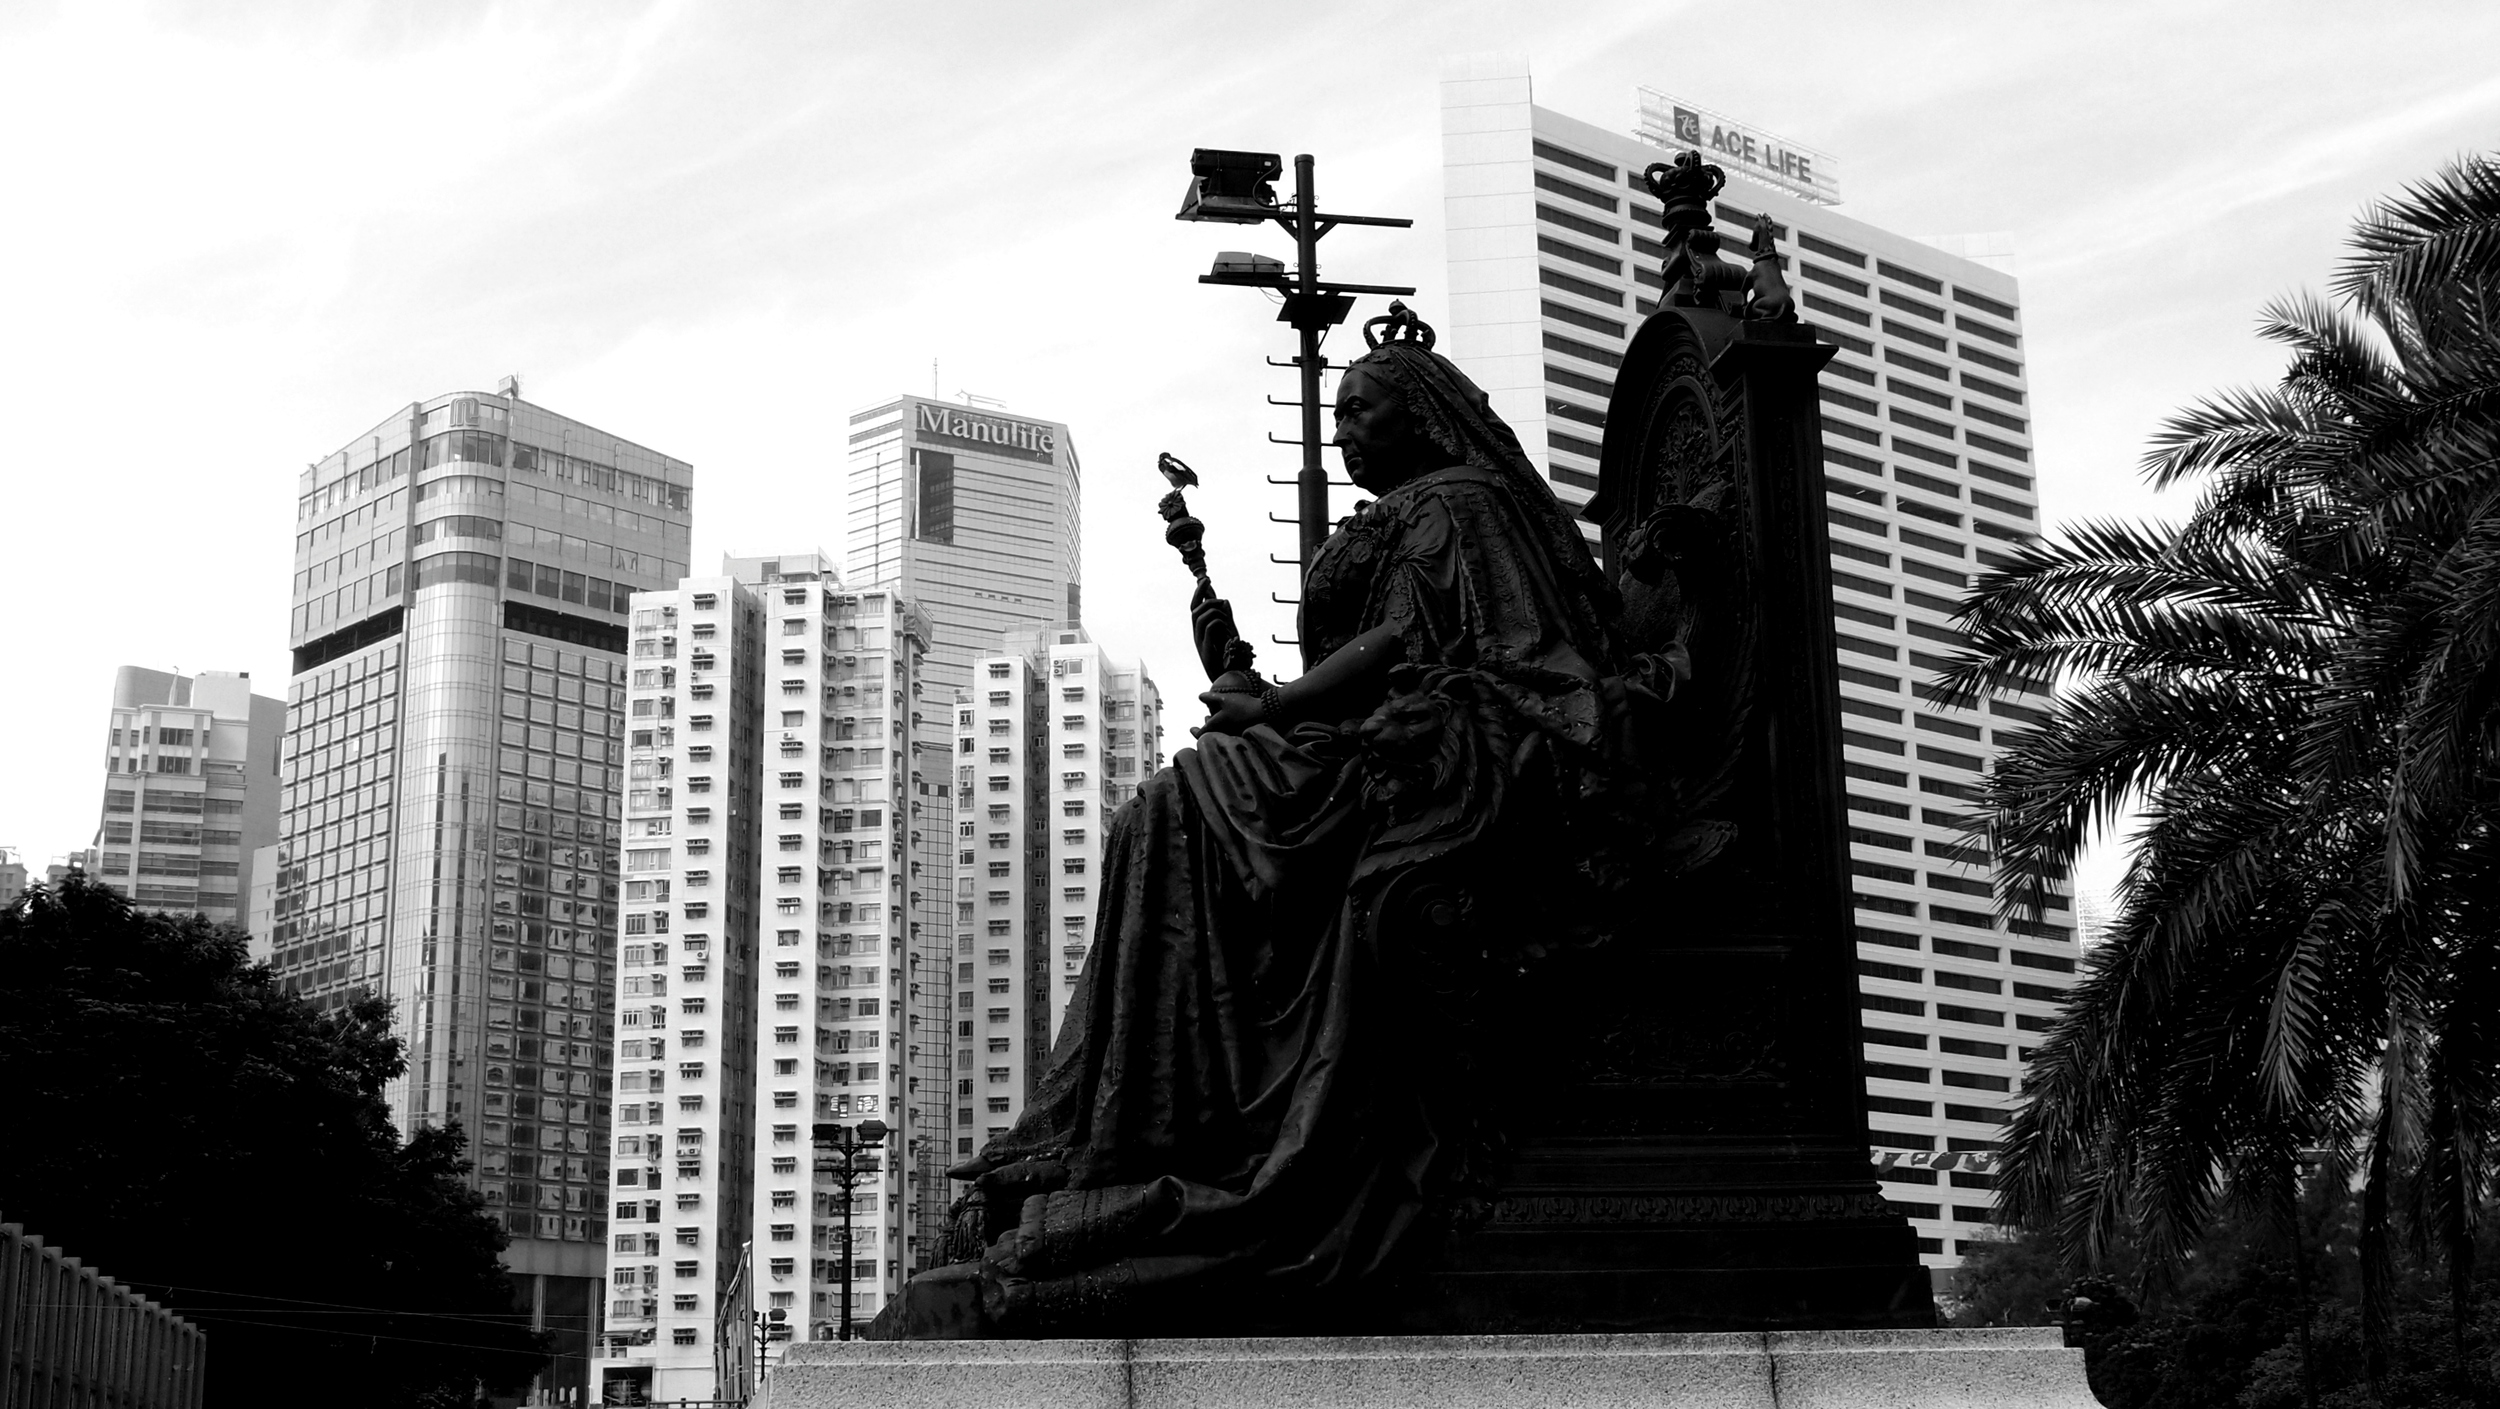 Queen Victoria lives on in Victoria Park in Causeway Bay - simply the most important historical monument in Hong Kong but hard to find unless you have prior knowledge